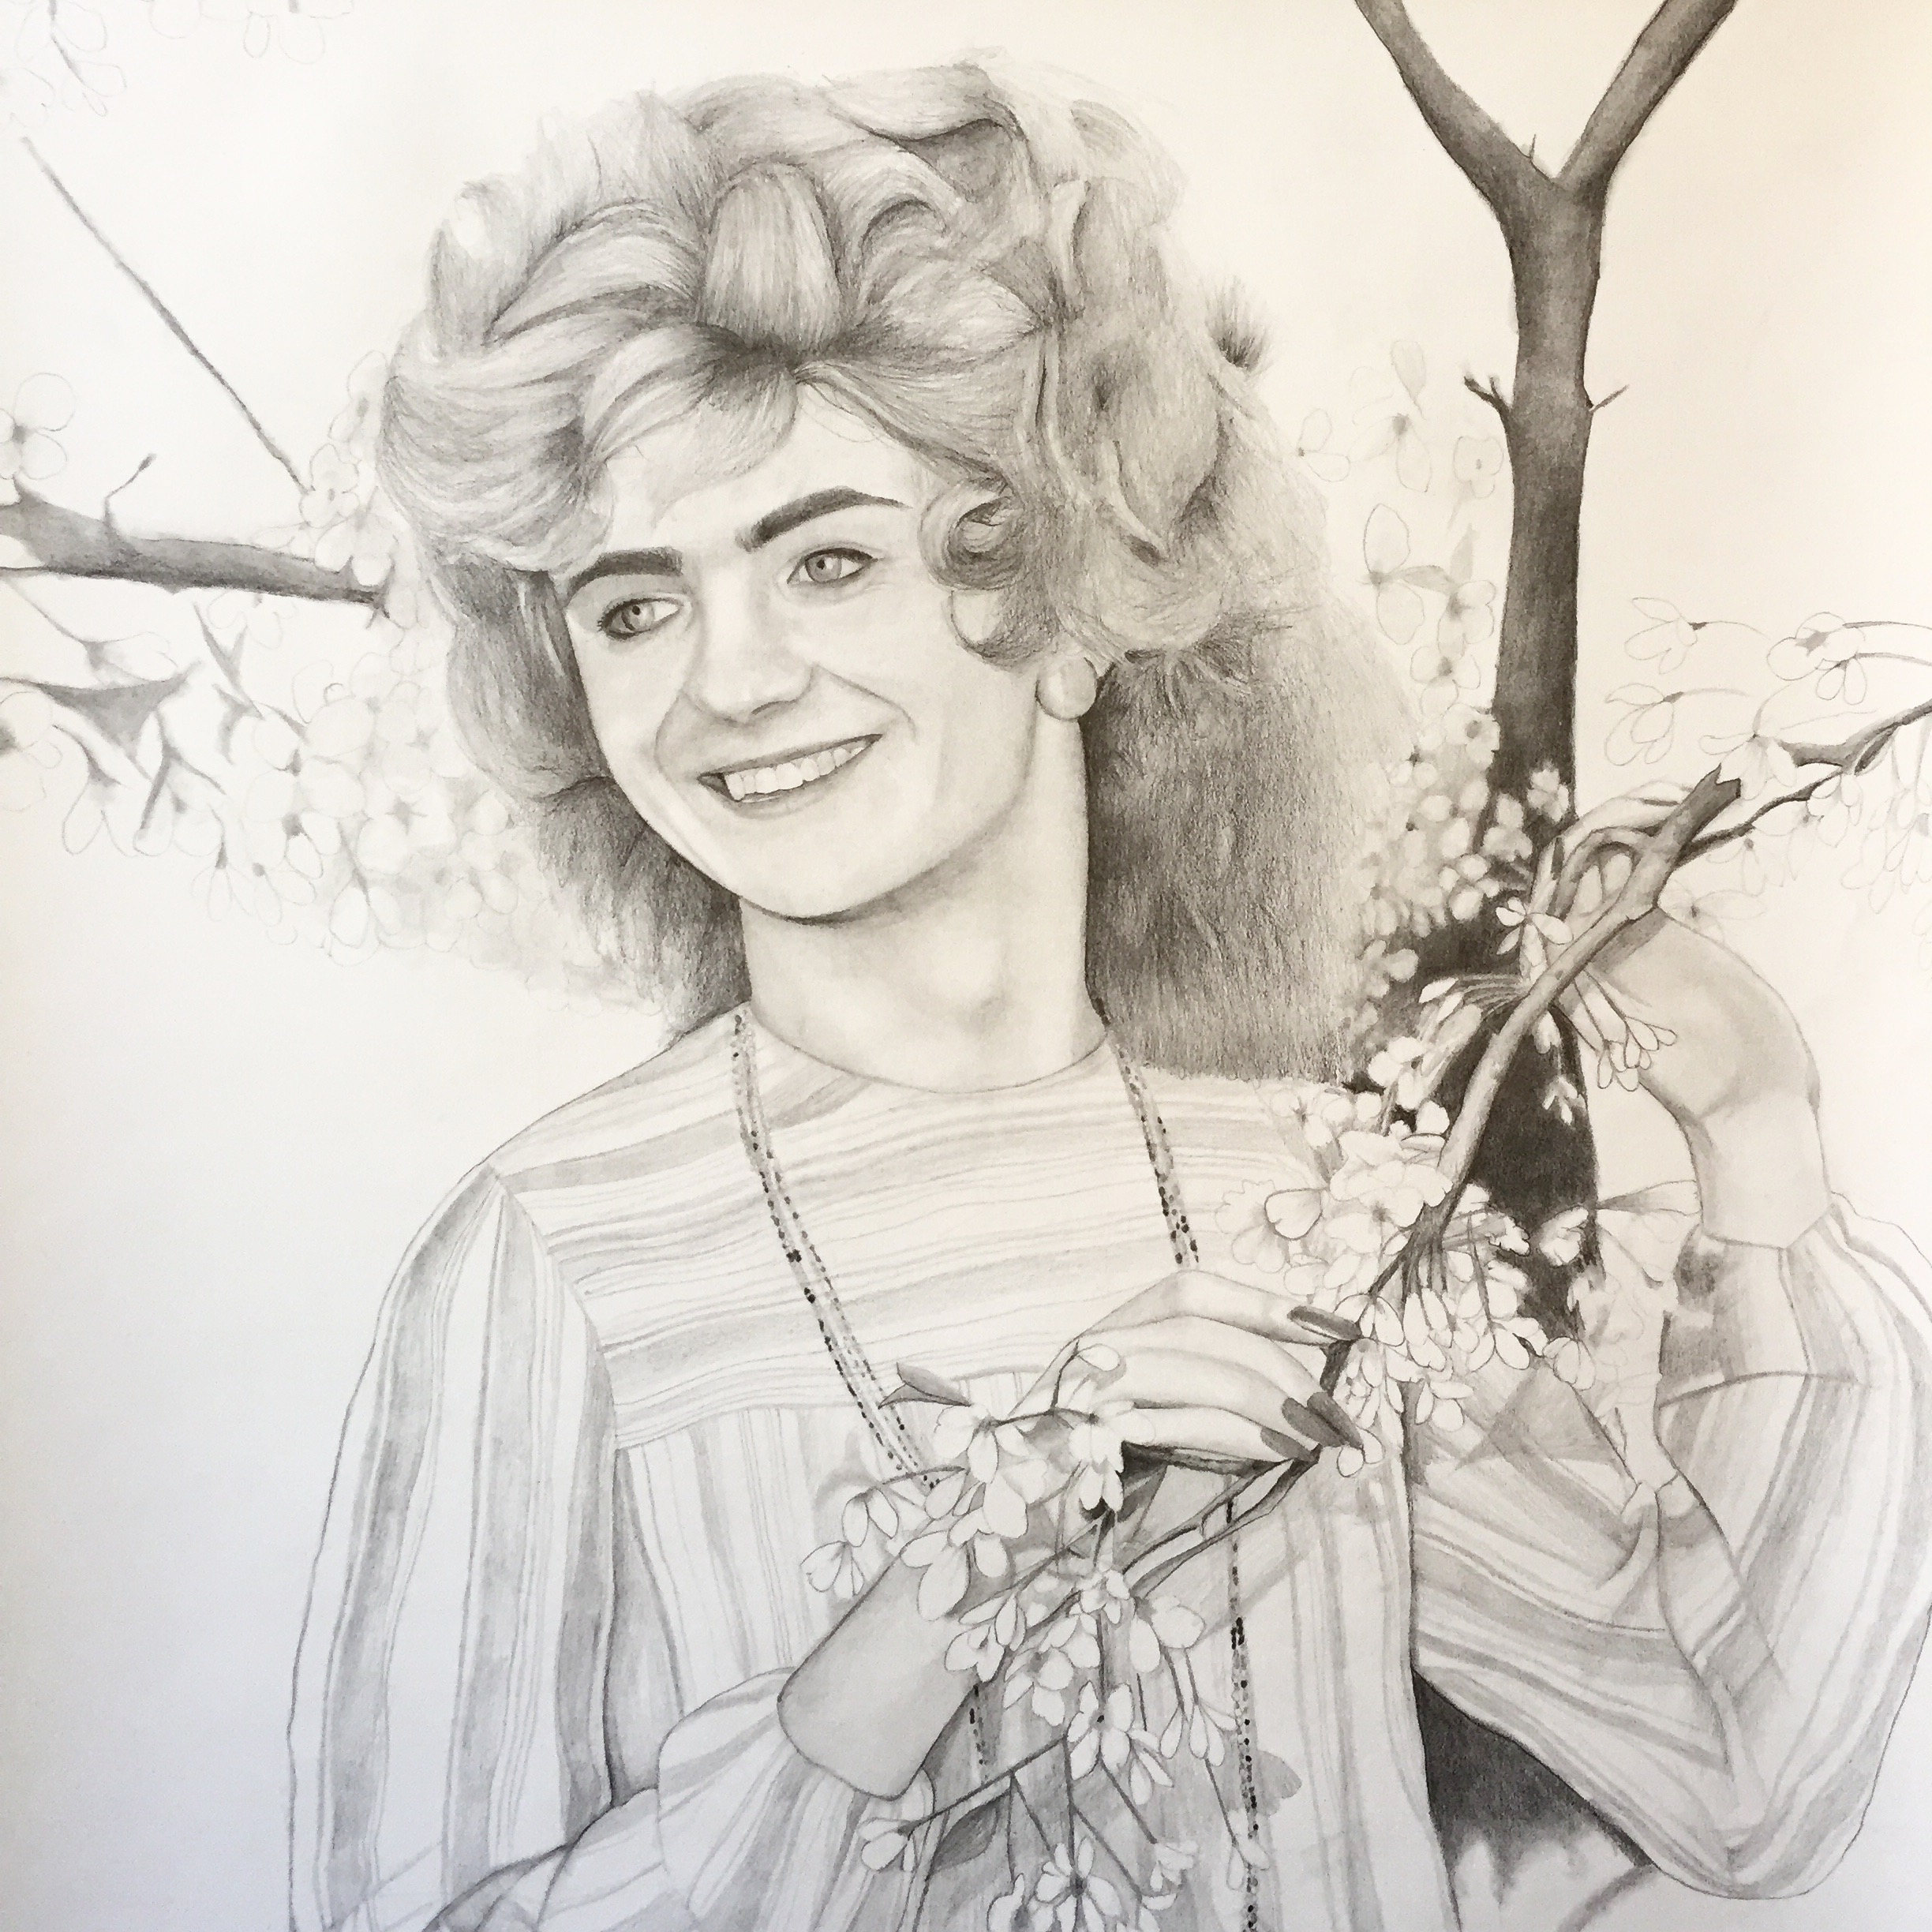 ERICA EYRES, Simone, 2018, pencil on paper, 38 x 28 inches